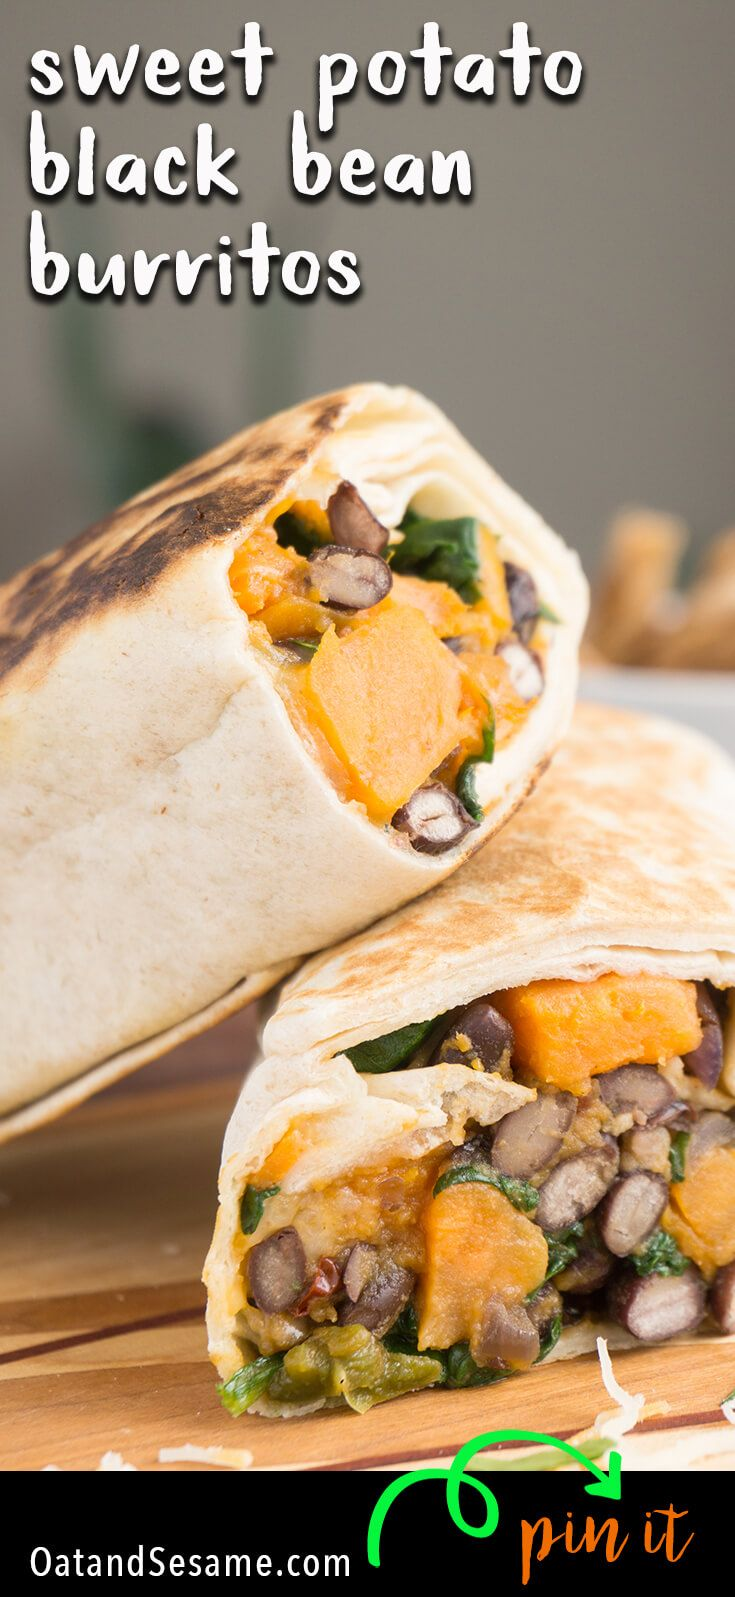 A BURRITO that everyone will love! Spinach, Sweet Potato, Black Beans tossed with a little chipotle and optional cheese. Freezable, Make Ahead and Perfect to tote to Lunch during the week! | #VEGETARIAN | #VEGAN | #MEXICAN | #BURRITO | #MAKEAHEAD | #Recipe at OatandSesame.com